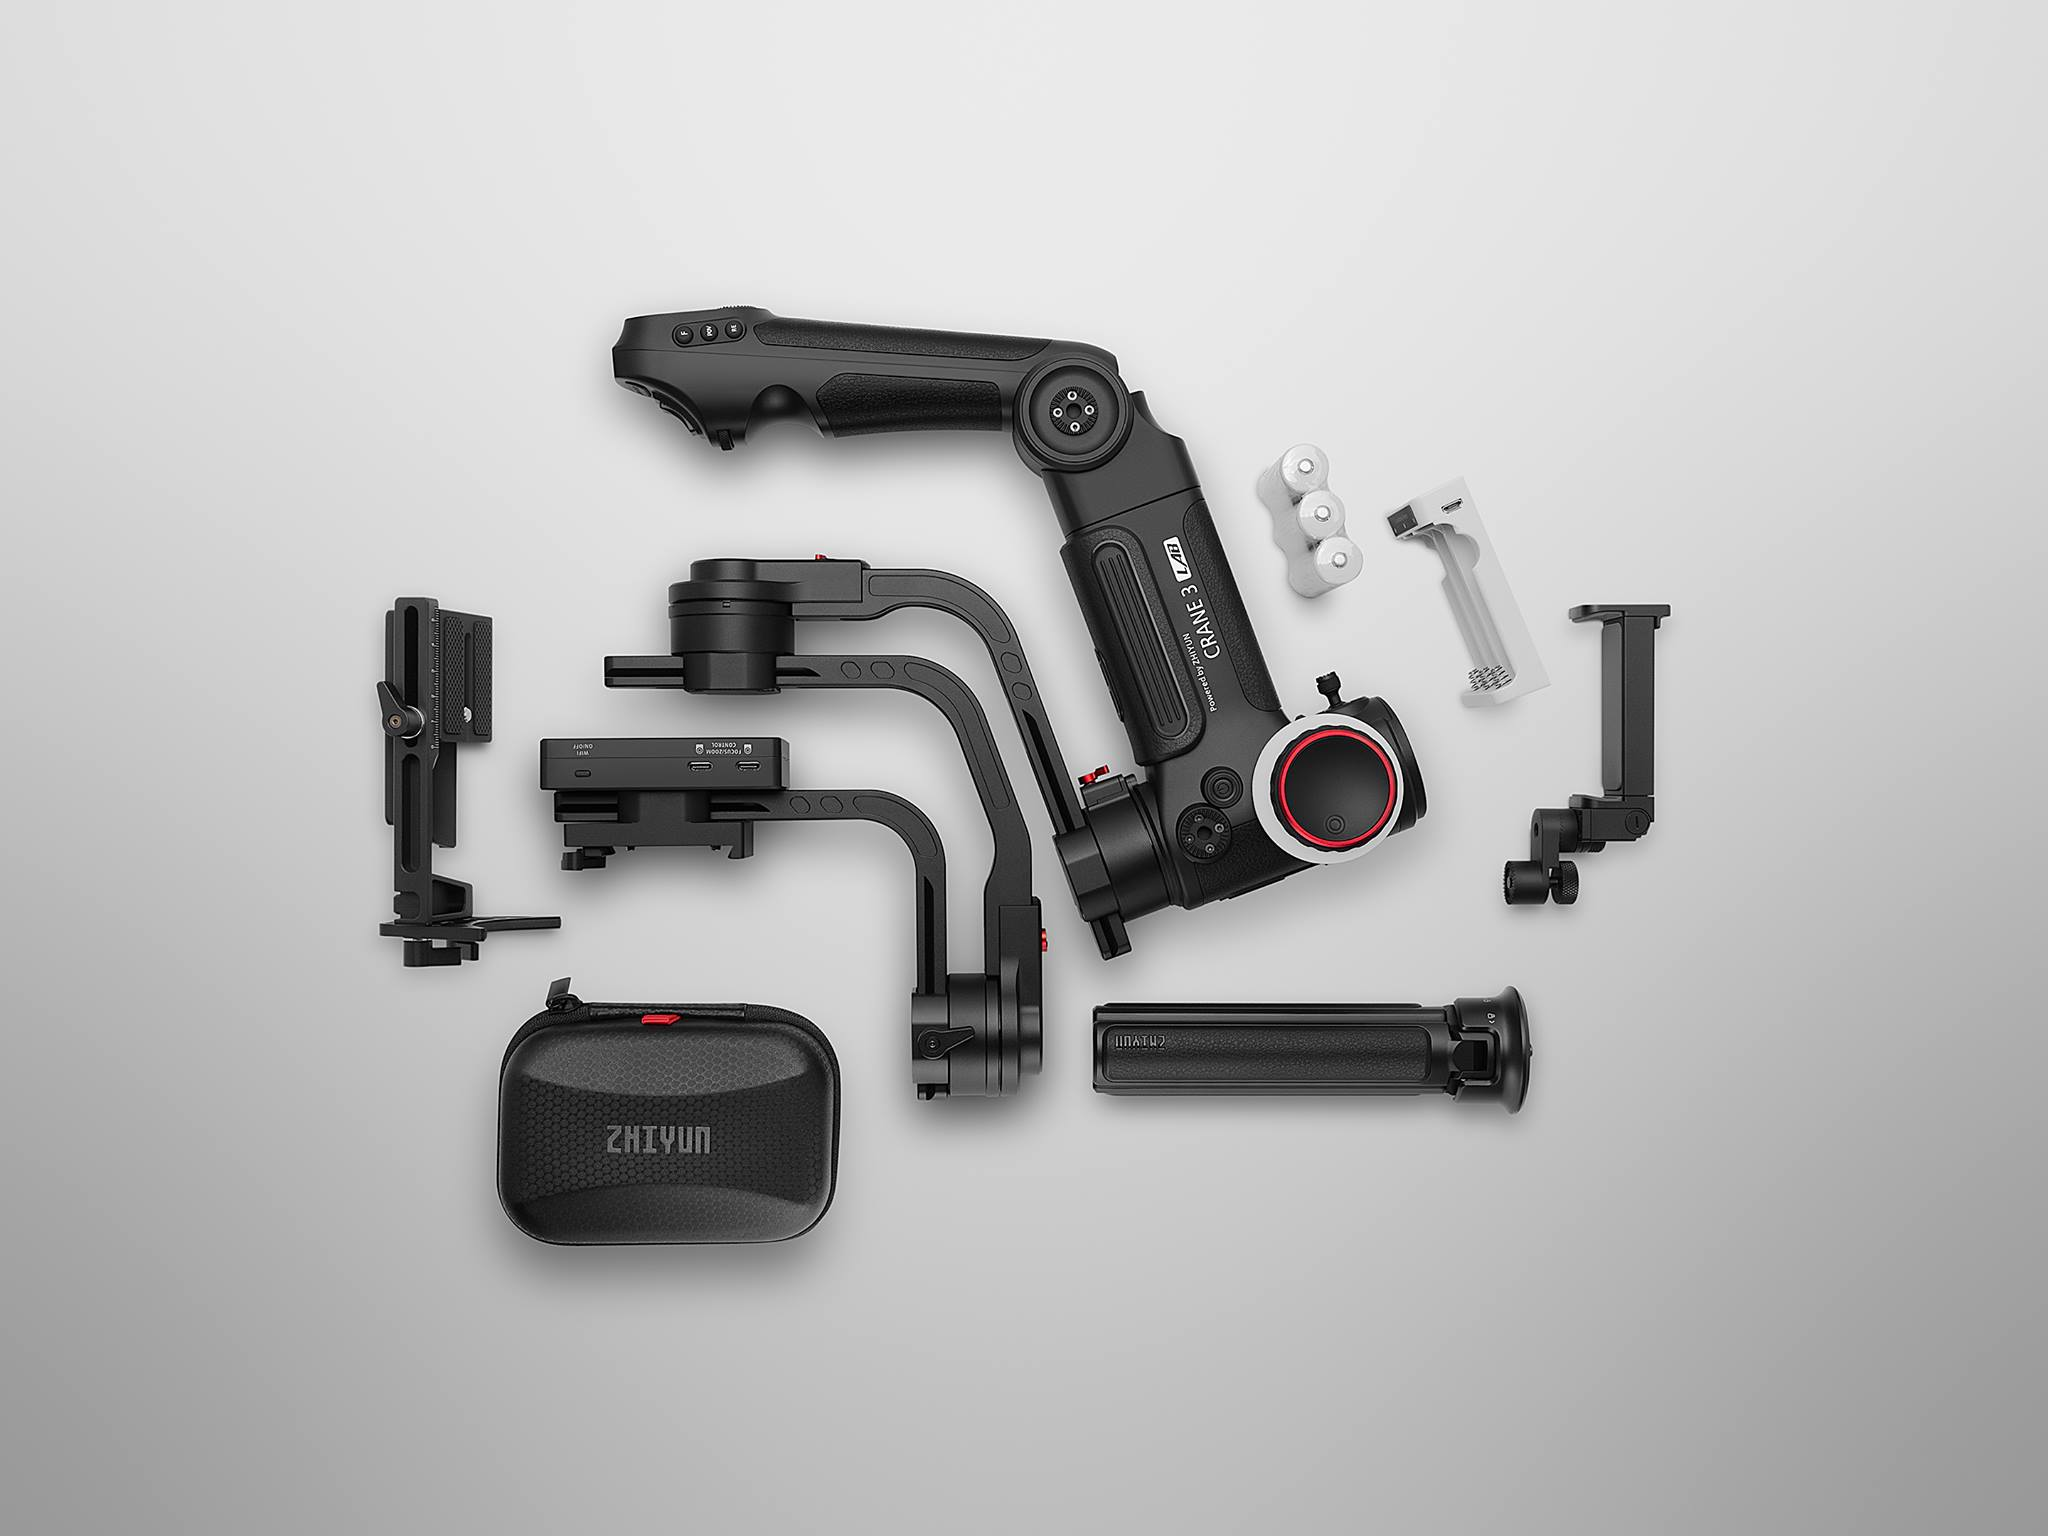 The Art of #Zhiyun #Crane3LAB